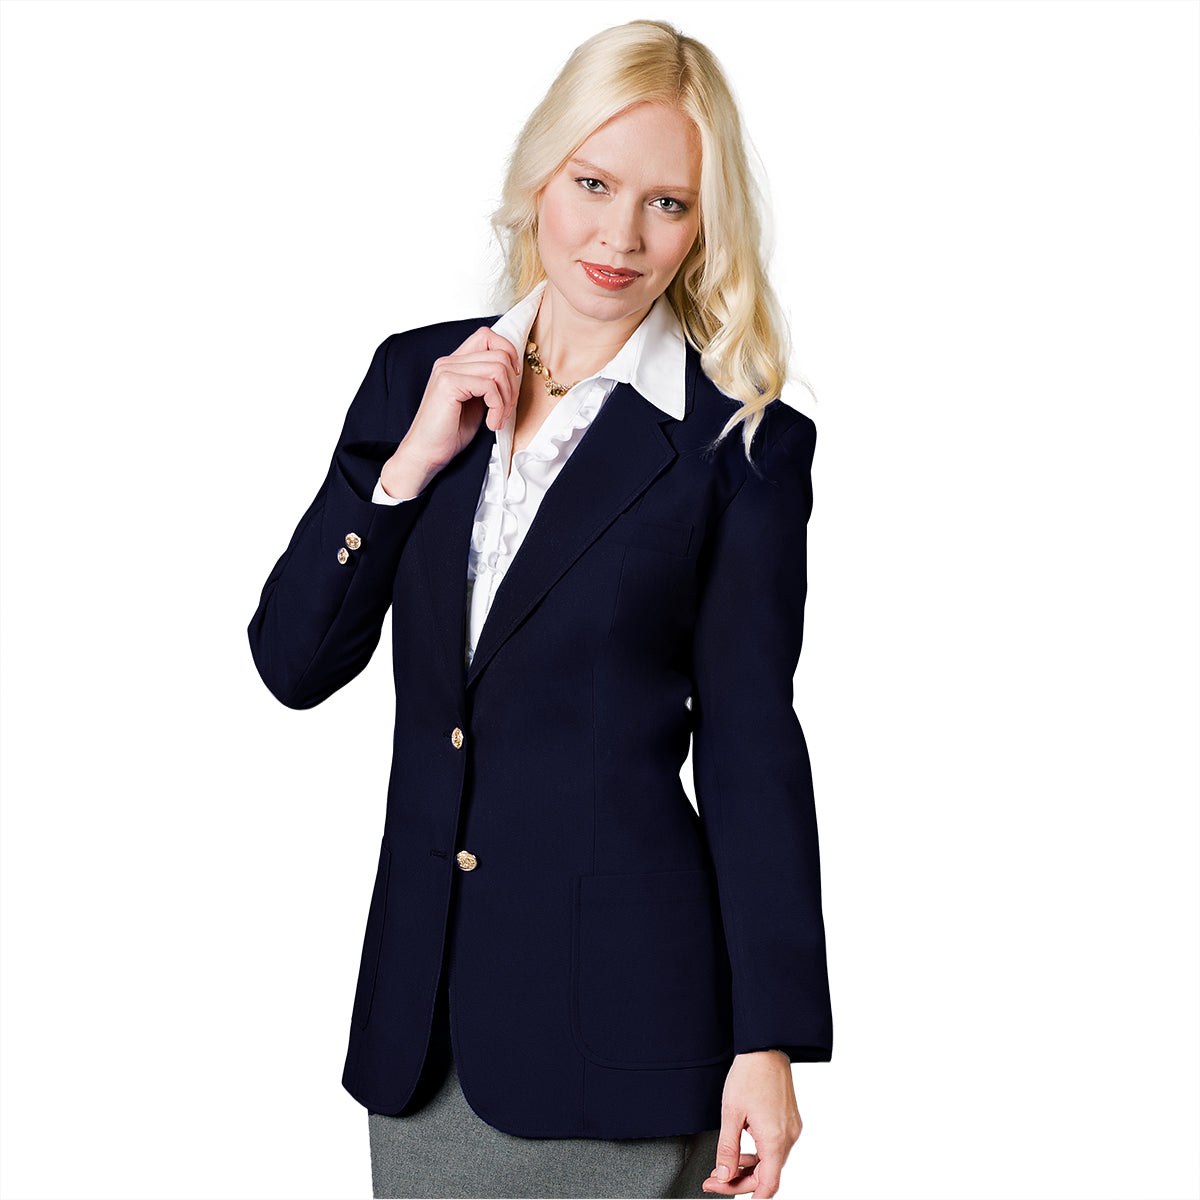 Girls Dress Blazer For Official School Uniform Sizes 4-16